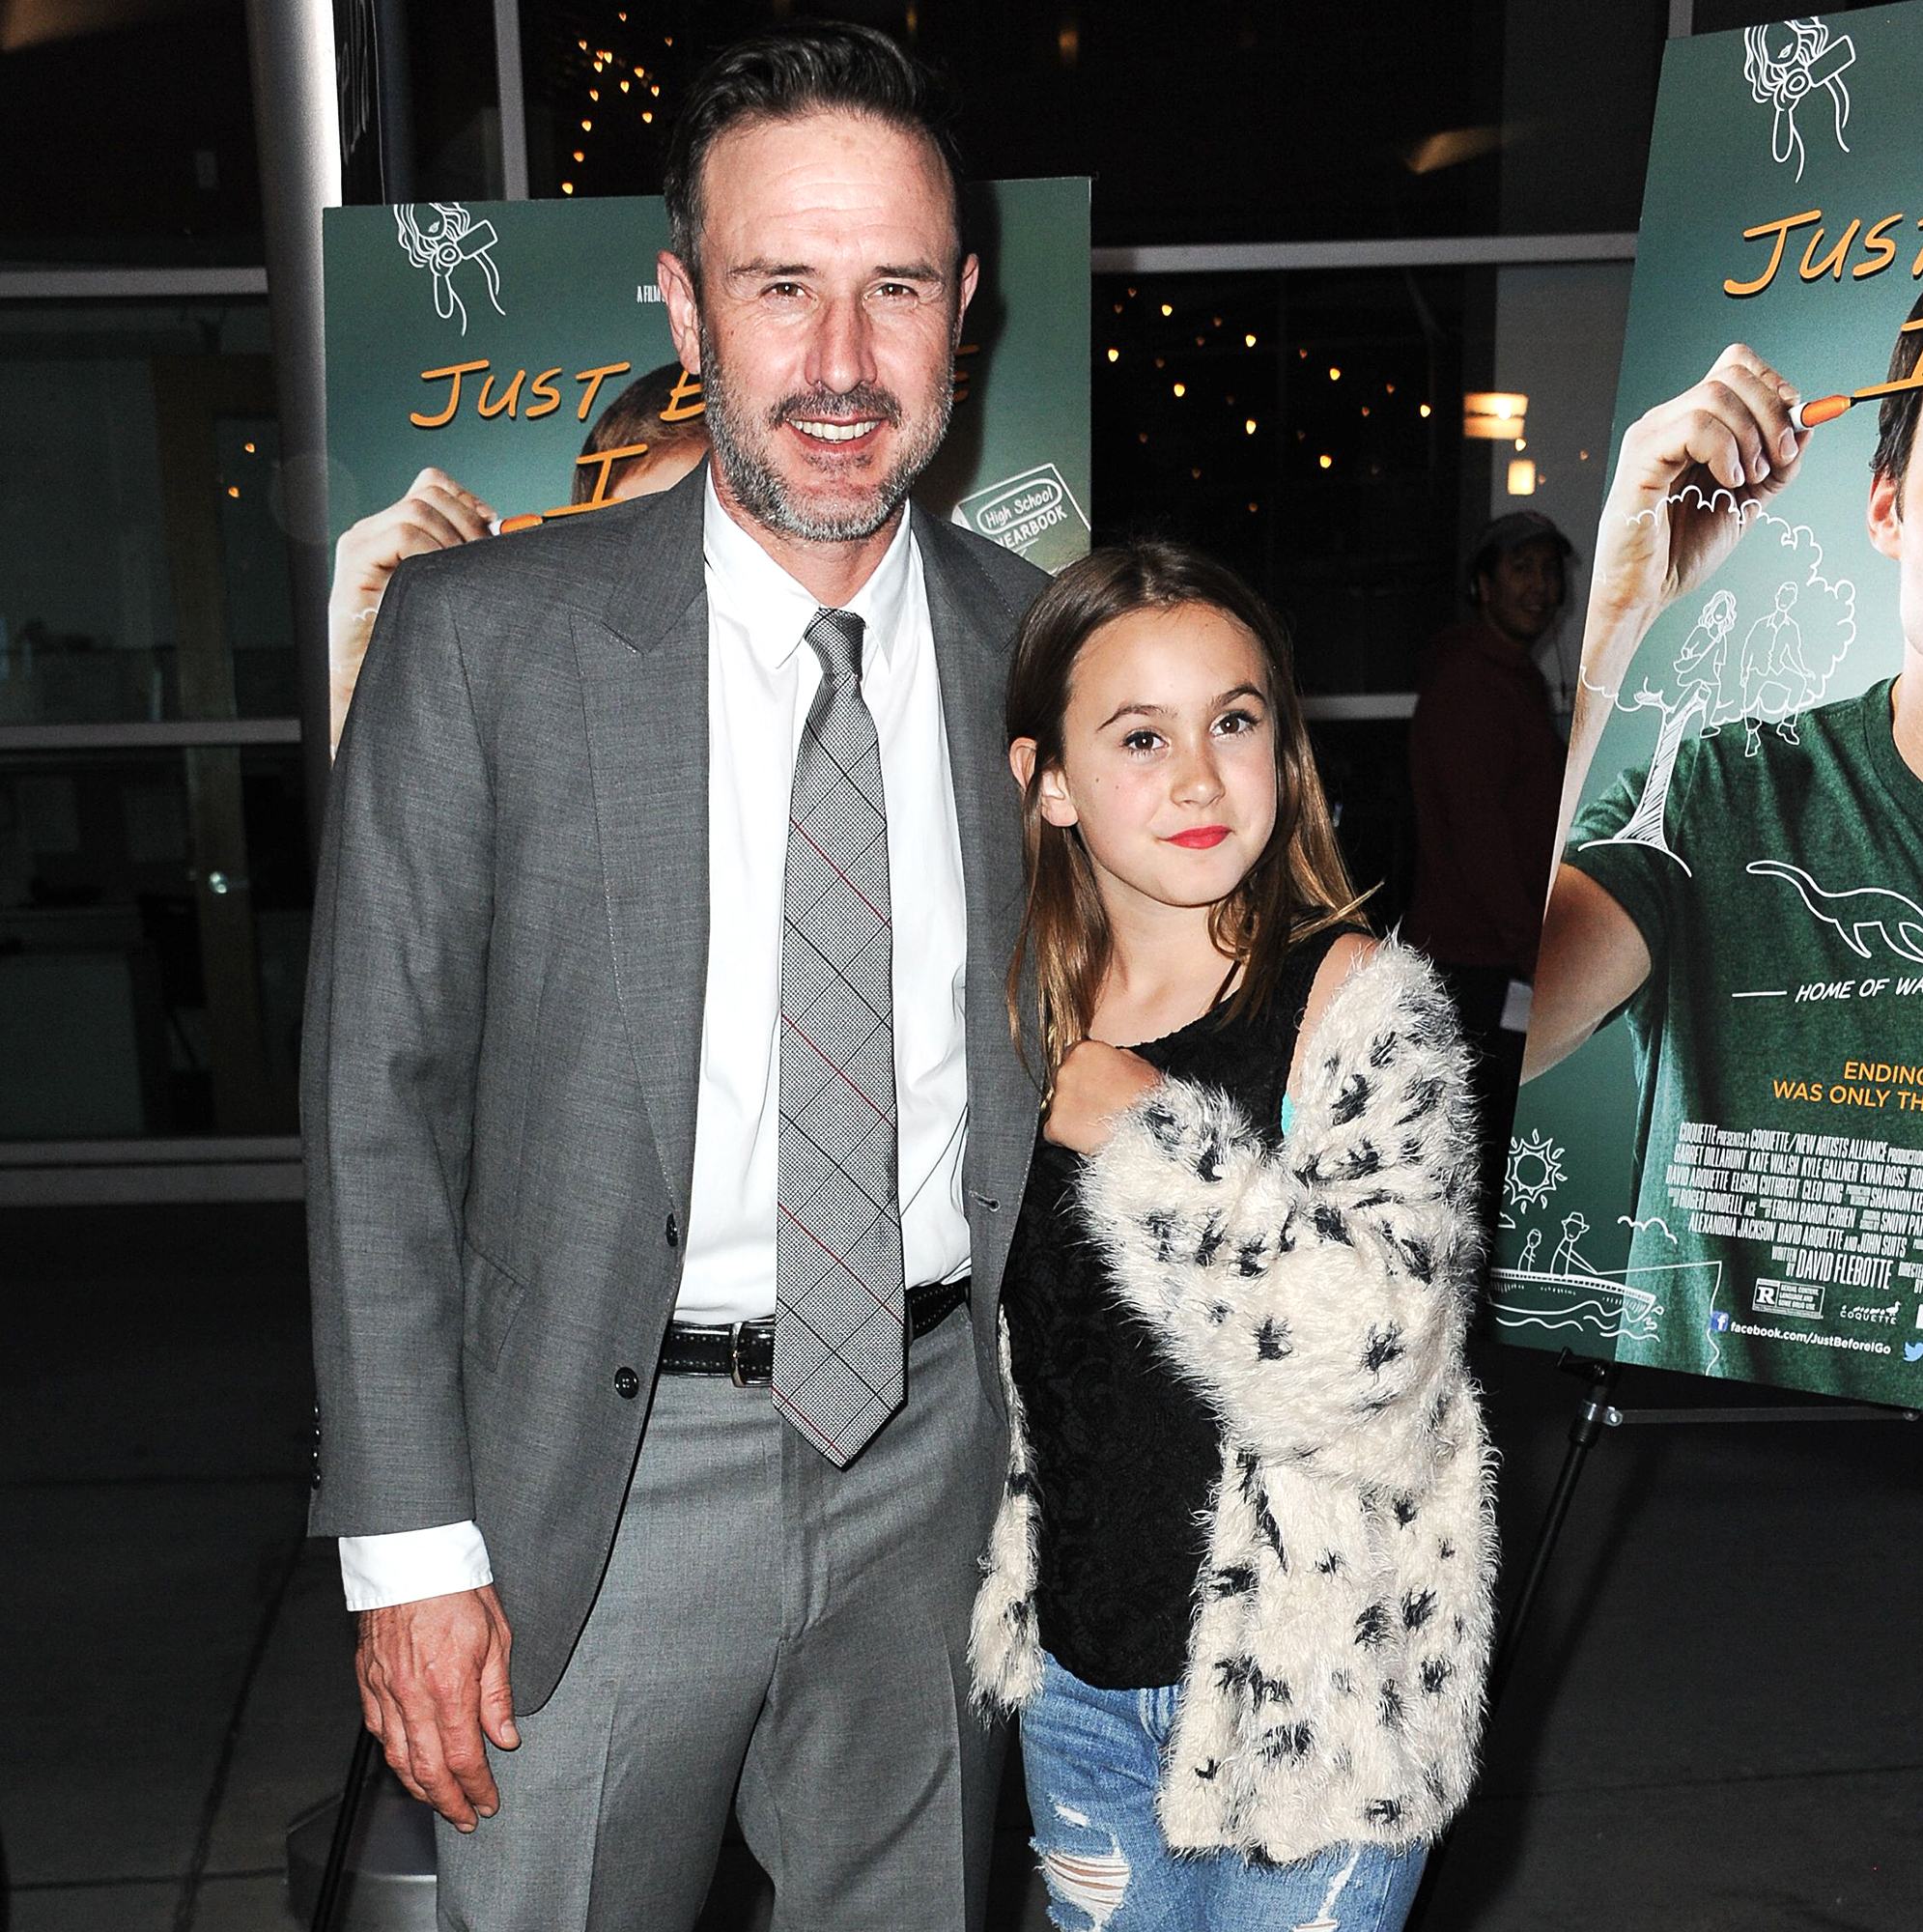 David-Arquette-Admits-Raising-Teenage-Daughter-Coco-Is-Like-Being-an-Elevated-Chaffeur